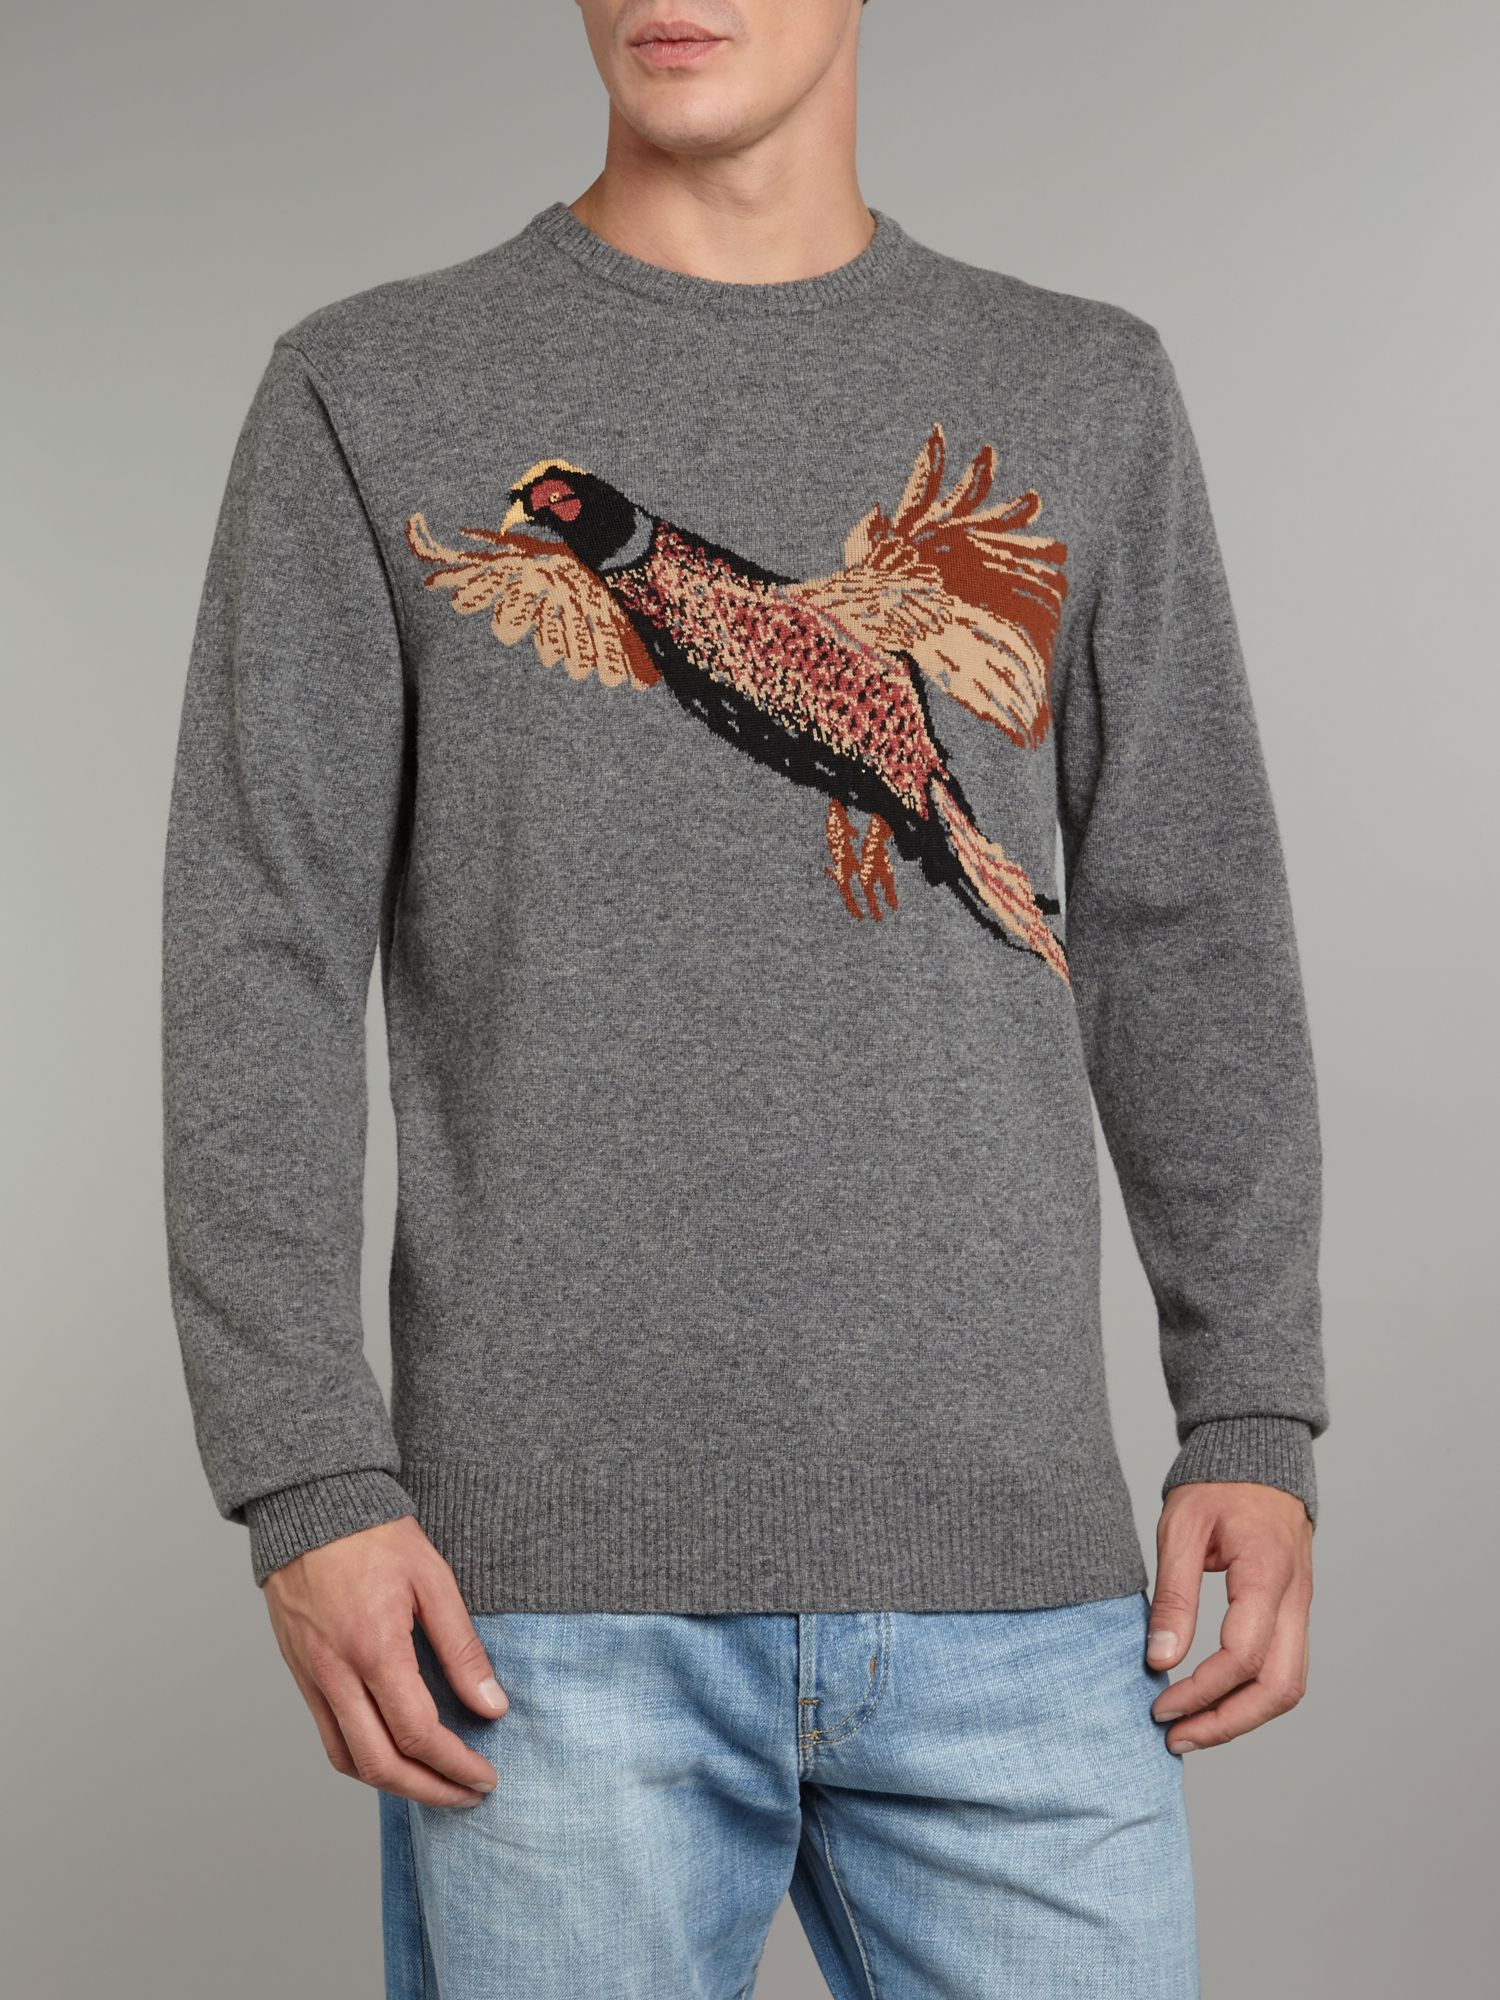 Pheasant crew neck jumper